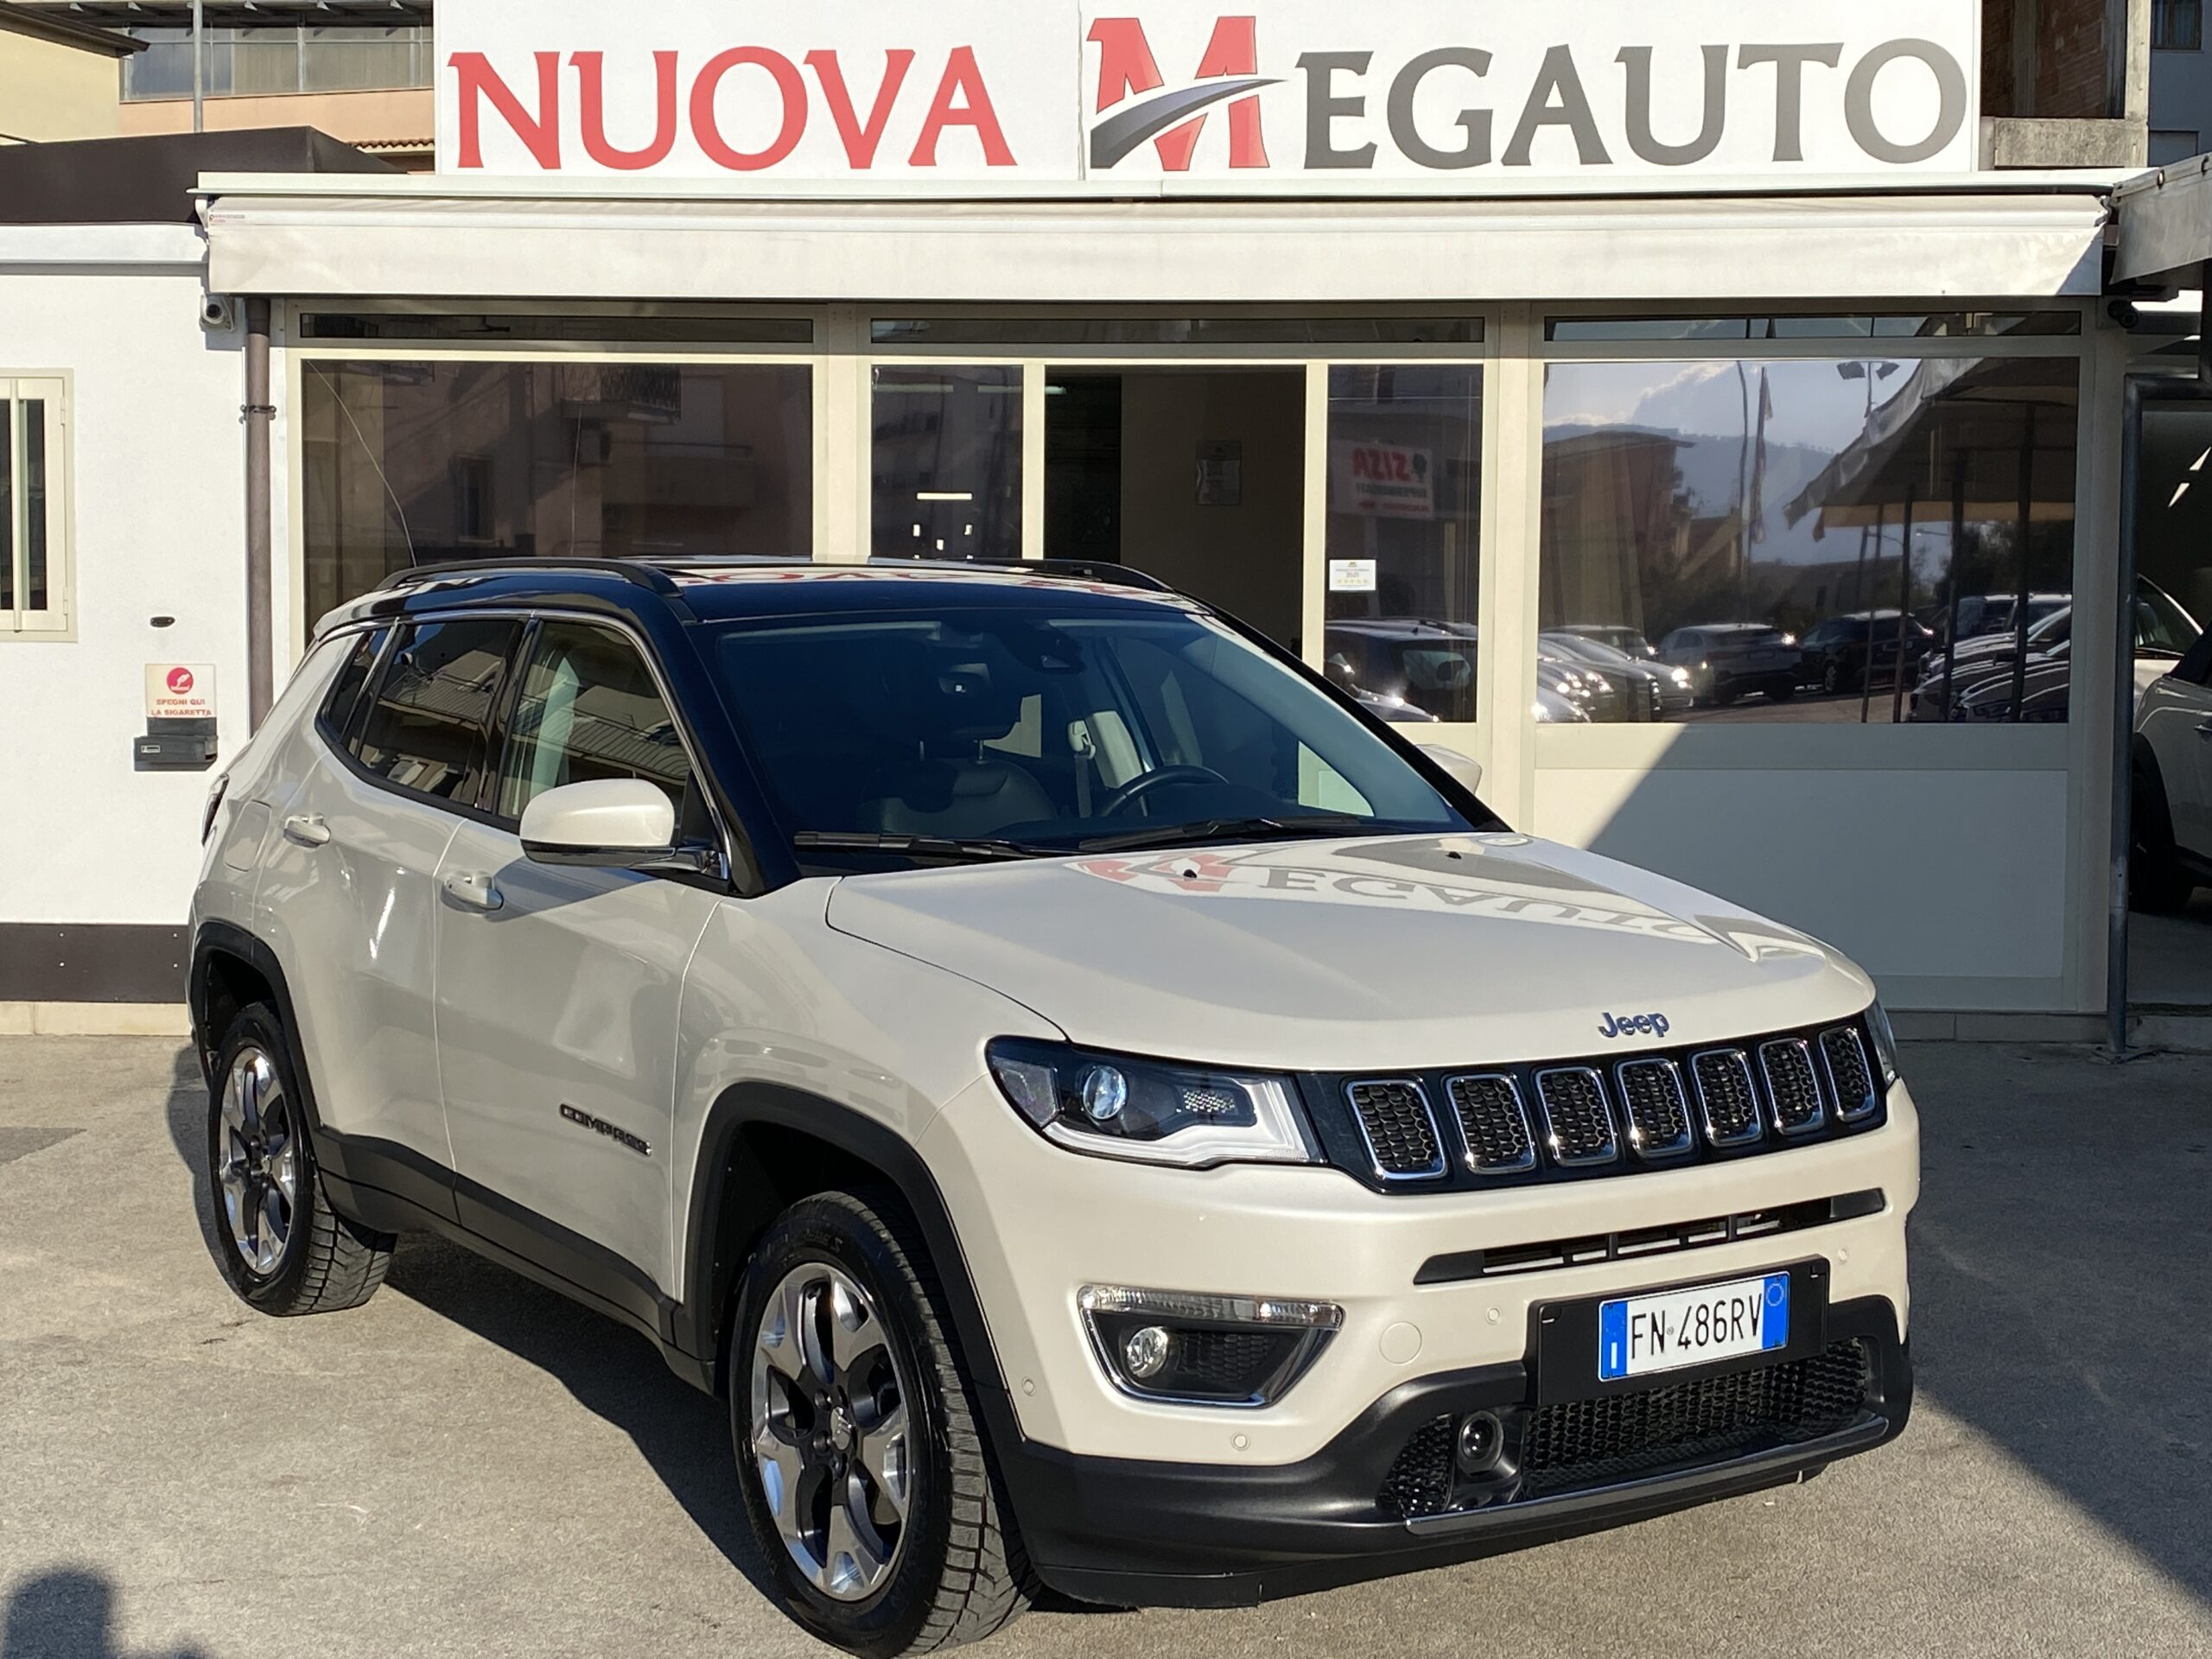 Jeep Compass 2.0 Multijet II Aut. 4WD Limited 170cv